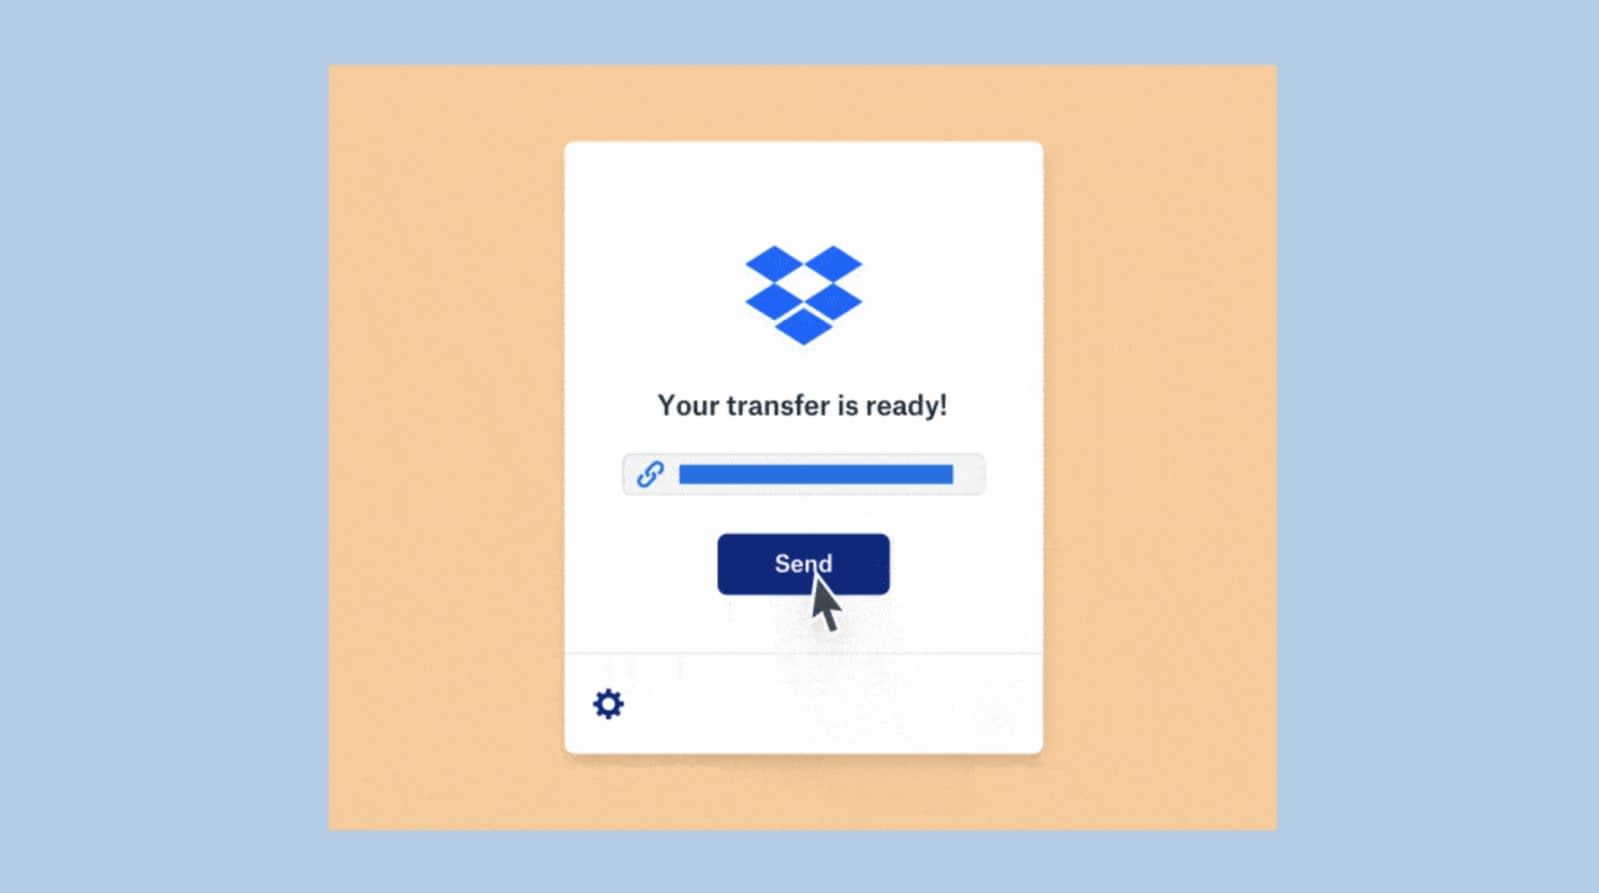 Dropbox Transfer lets you send up to 100GB of files at once